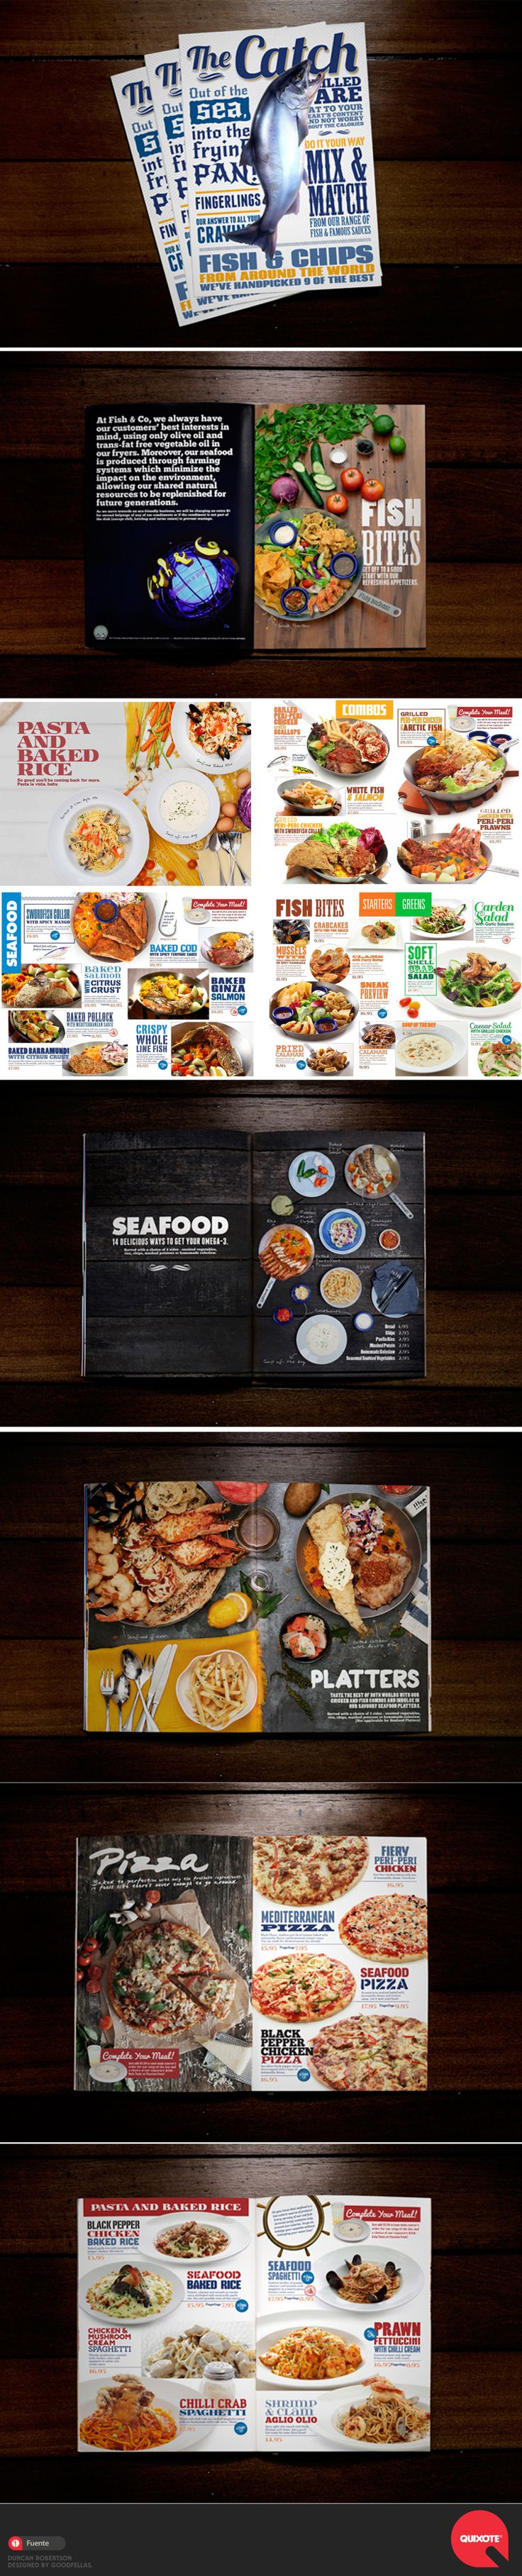 Great and fun Menu Design. This menu showcases the restaurant's food through tantalizing photos and merry typography. Fish Co. is located in Singapore. Design by Goodfellas